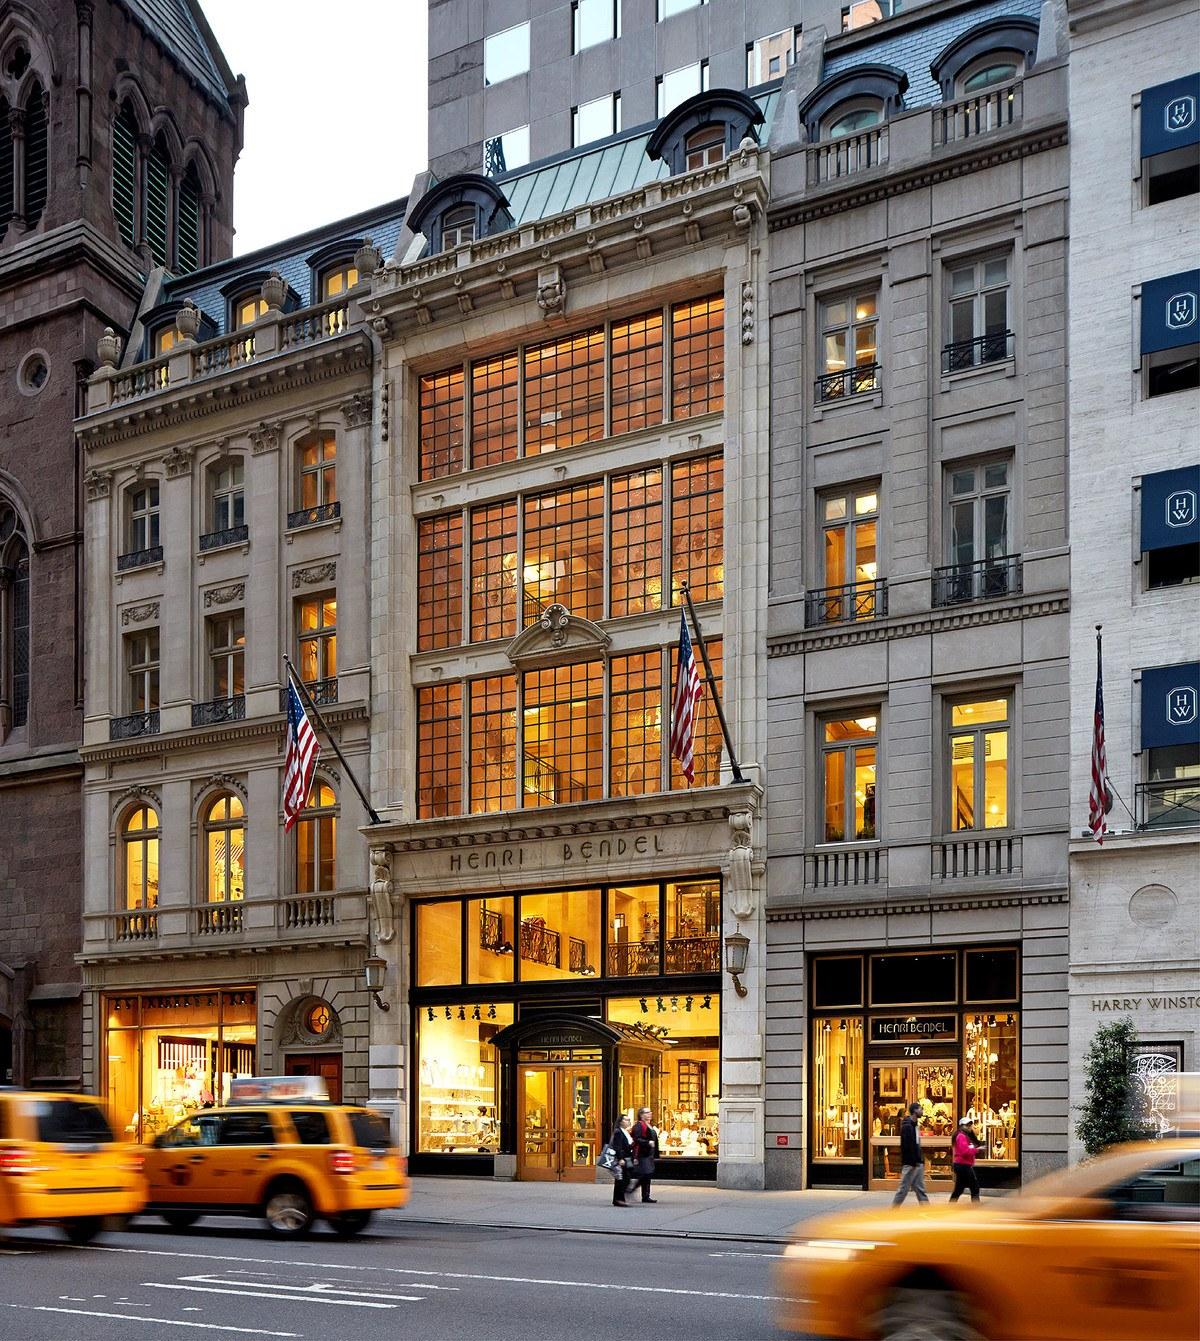 Ren Laliques Windows Saved This Fifth Avenue Building From